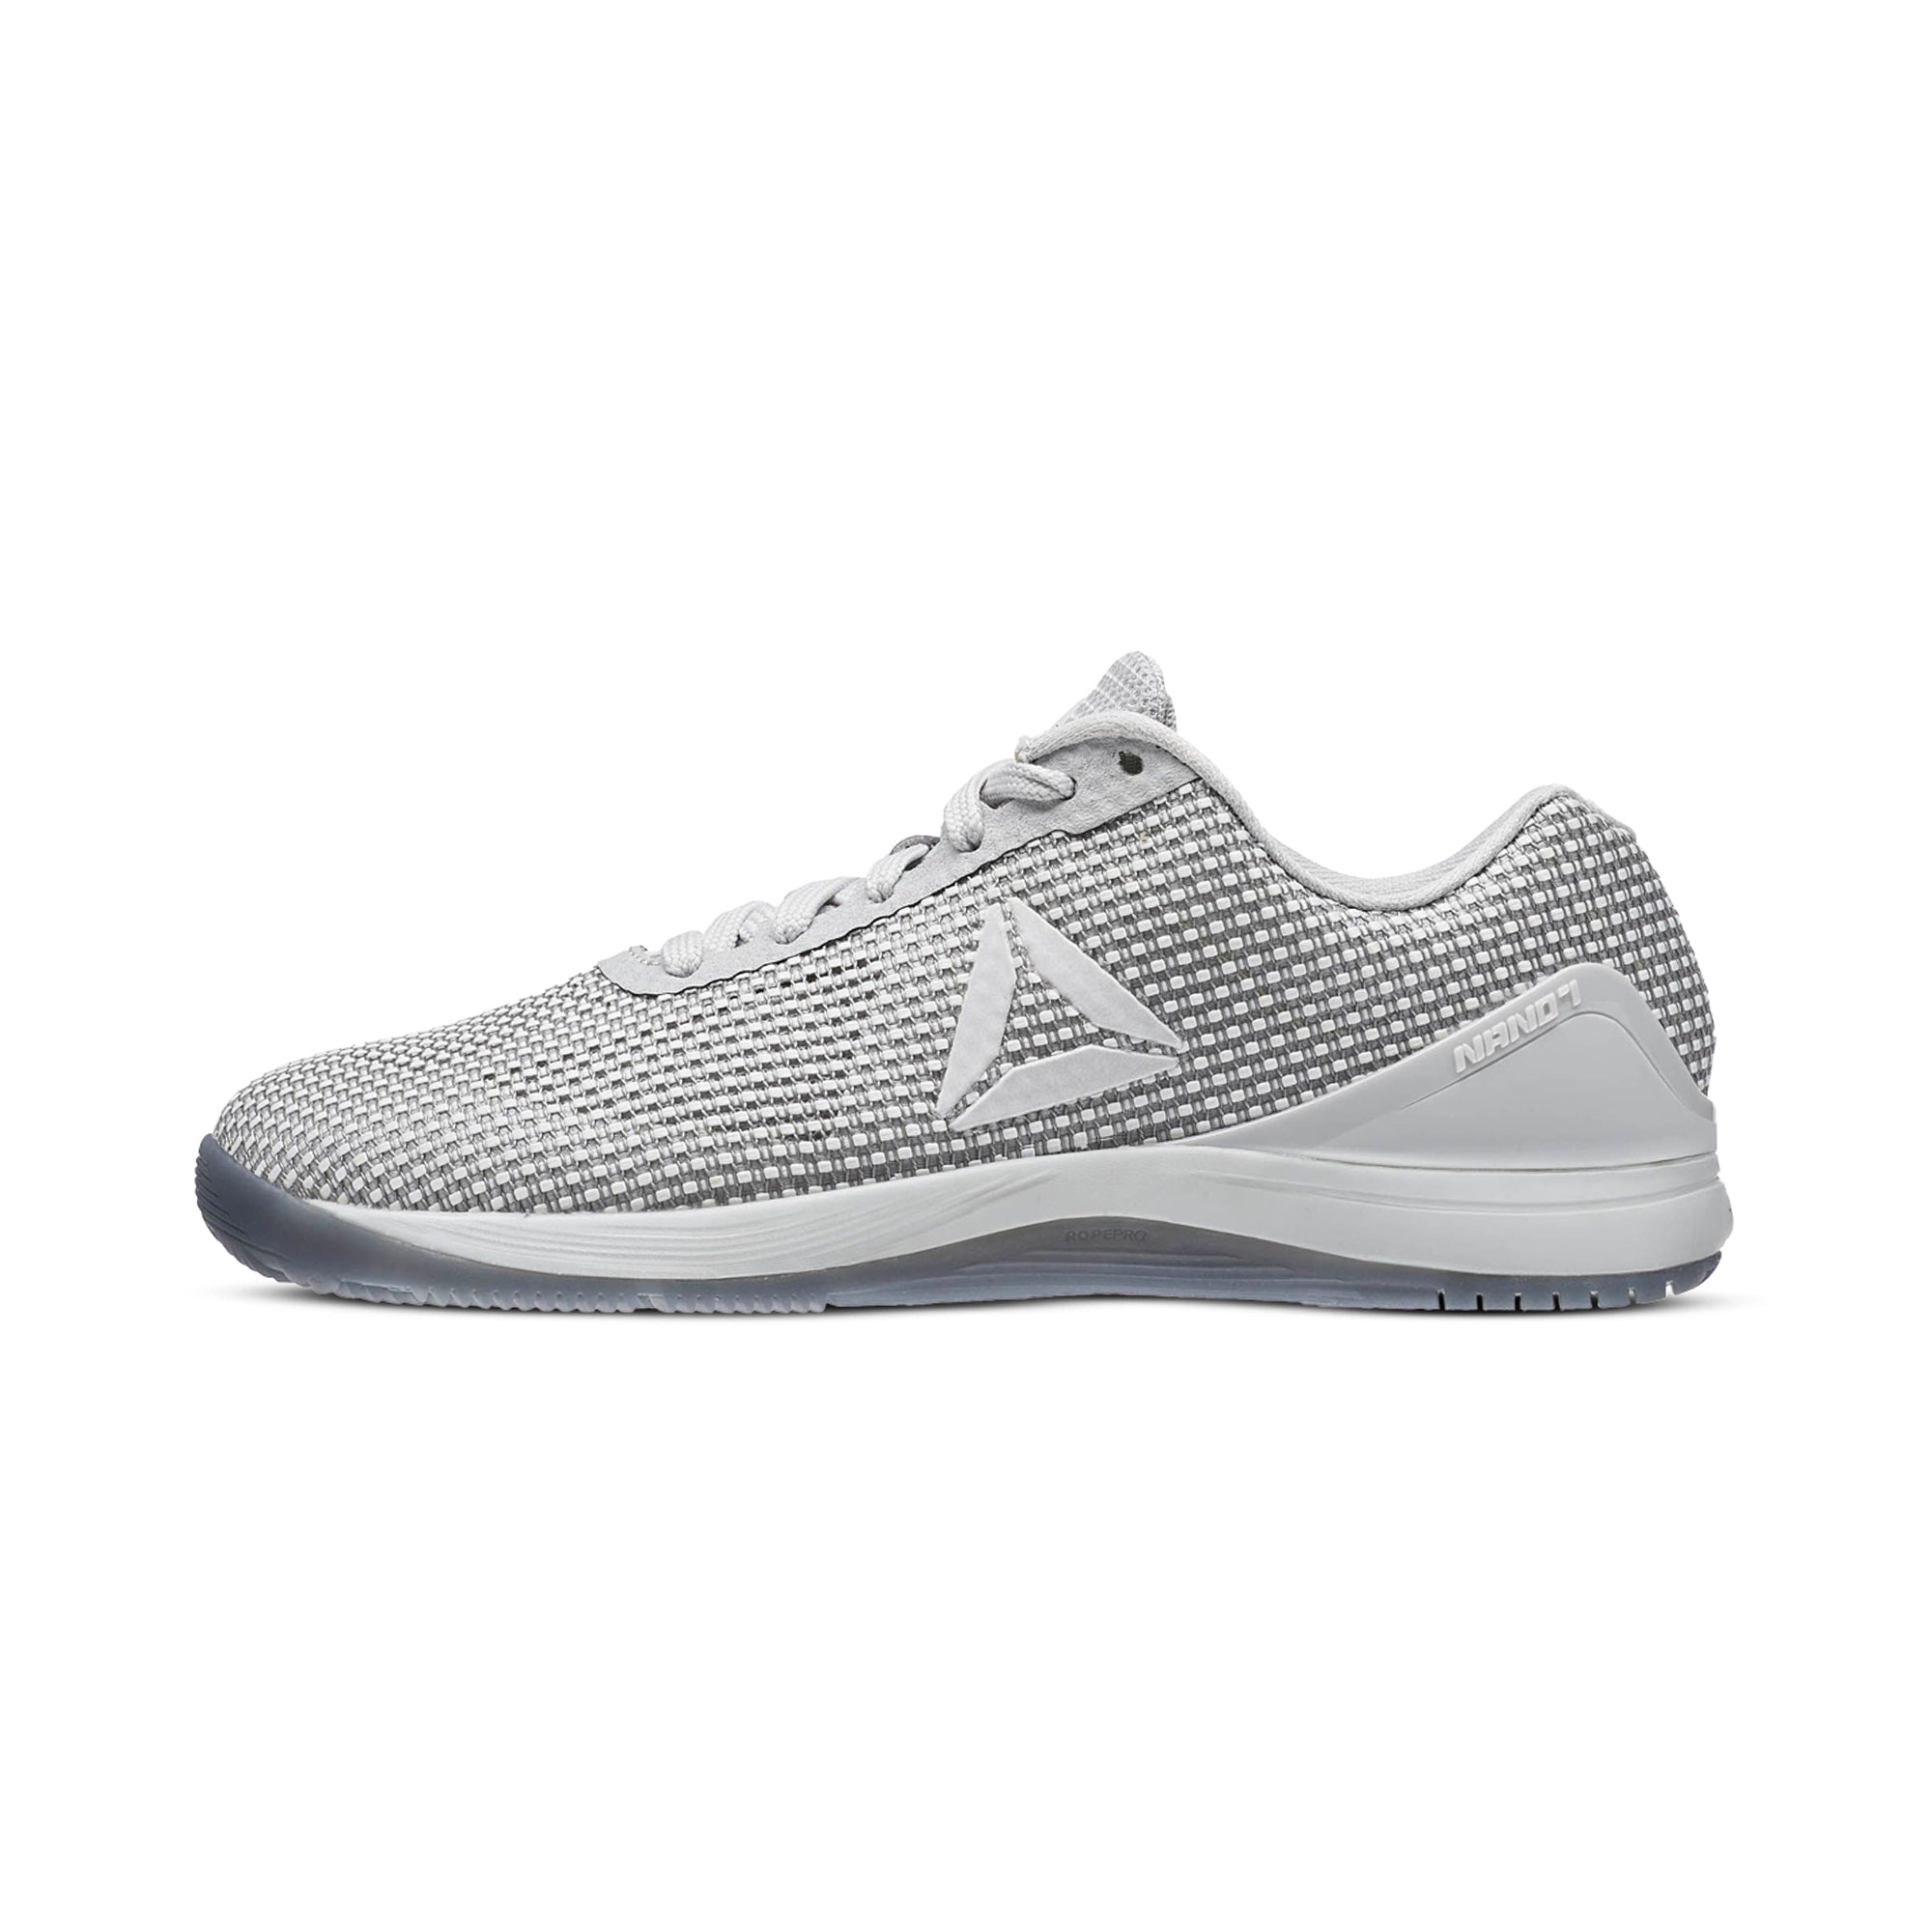 [BD5120] Womens Crossfit Nano 7.0